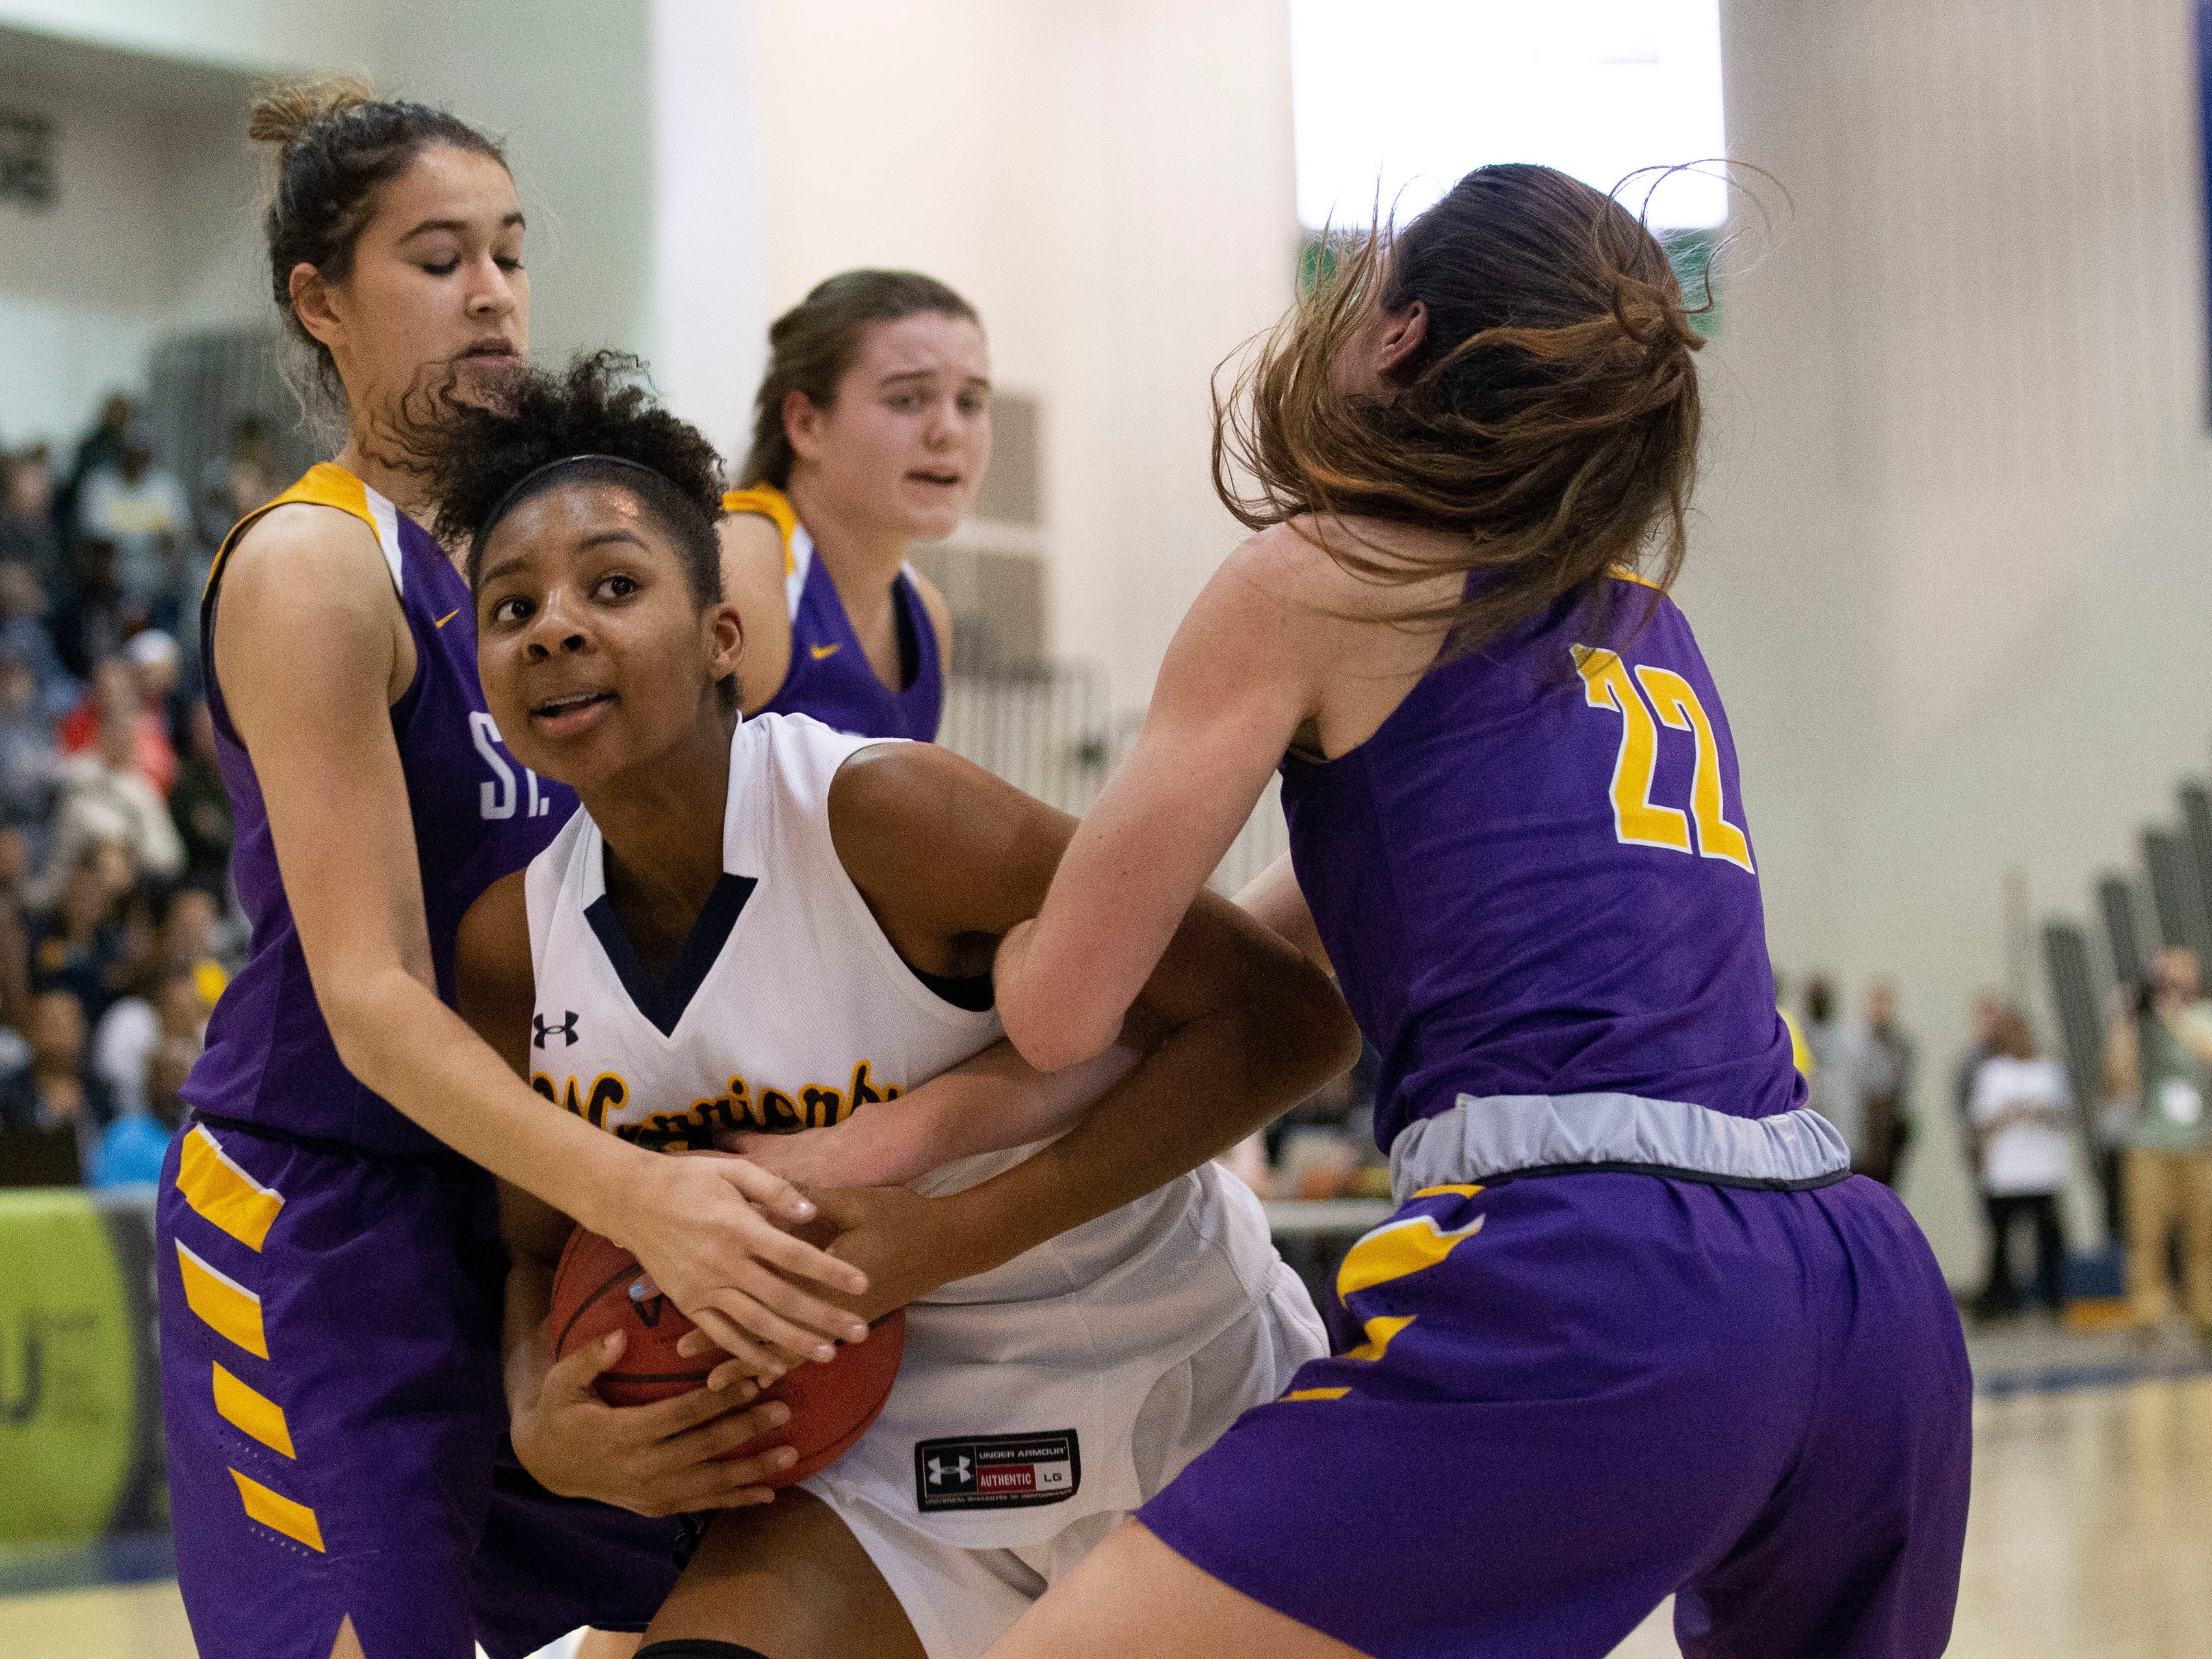 Christina Midgette, Franklin batles for ball with a crowd of St. Rose players during first half action. St Rose Girls Basketball vs Franklin High School in NJSIAA Tournament of Champions Semifinal in Toms River on March 14, 2019.